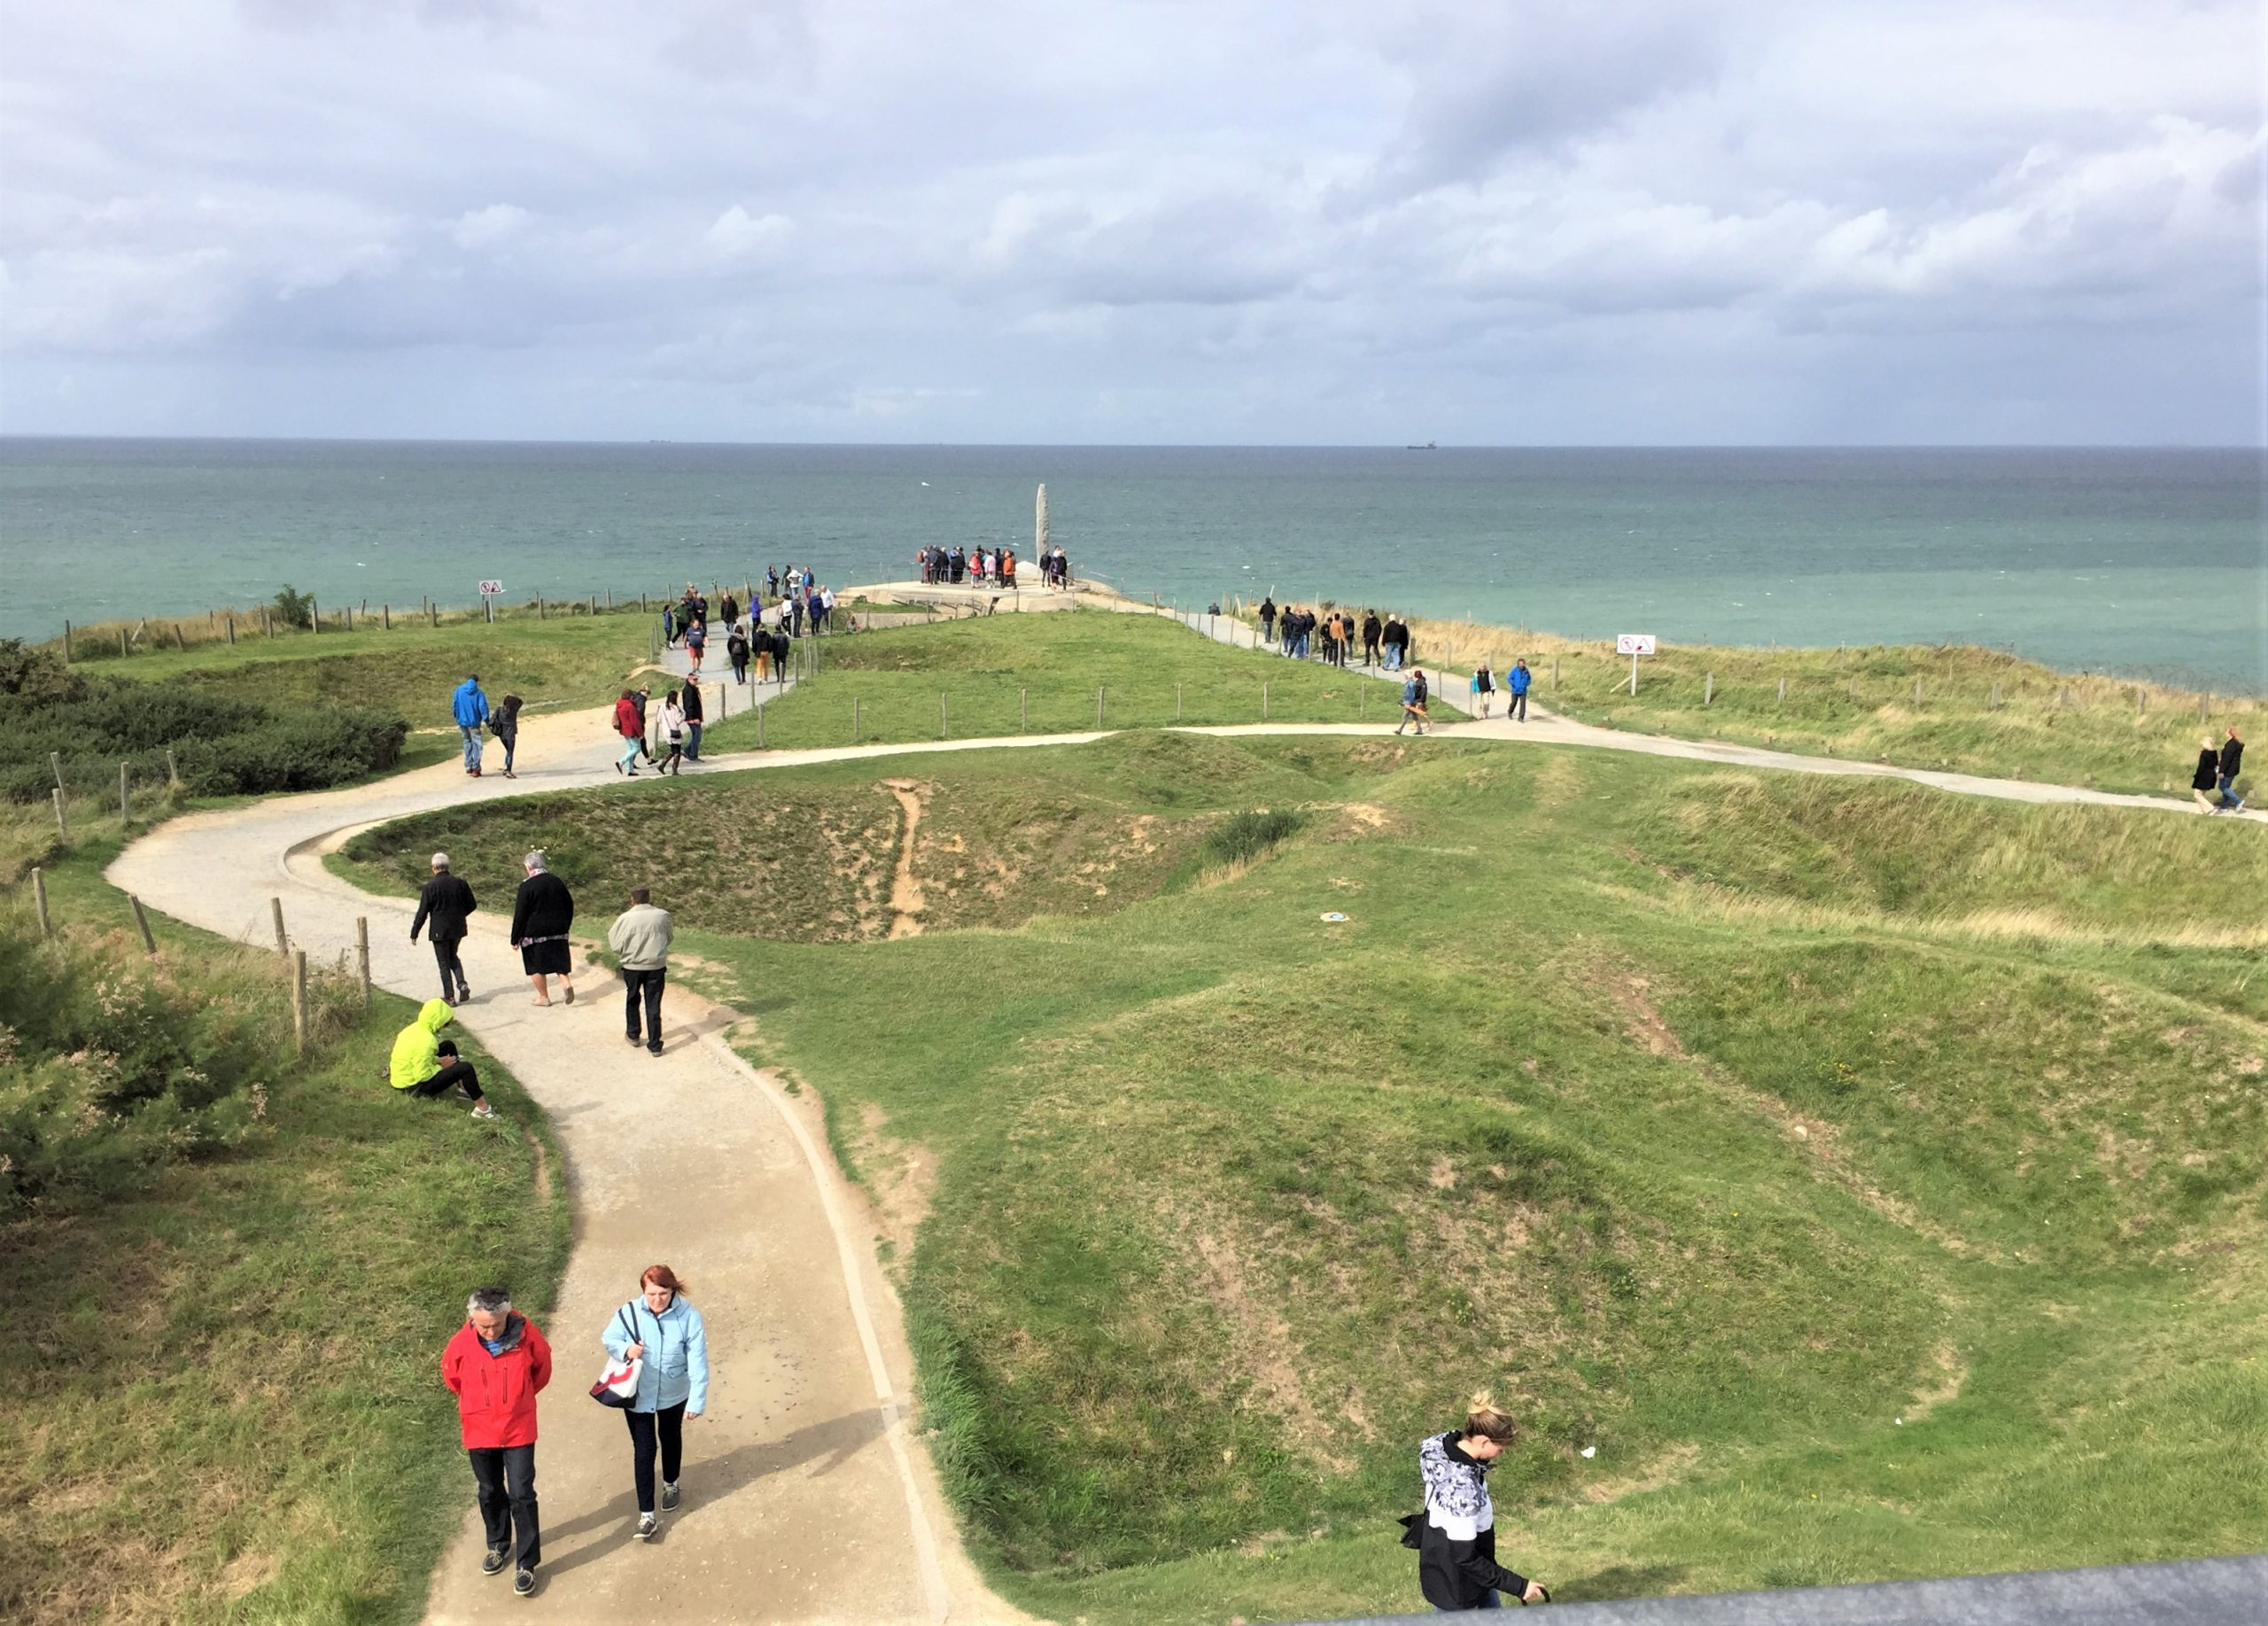 View over Pointe du Hoc from the top of a gun battery, facing the point (Photo: Sarah Sundin, September 2017)